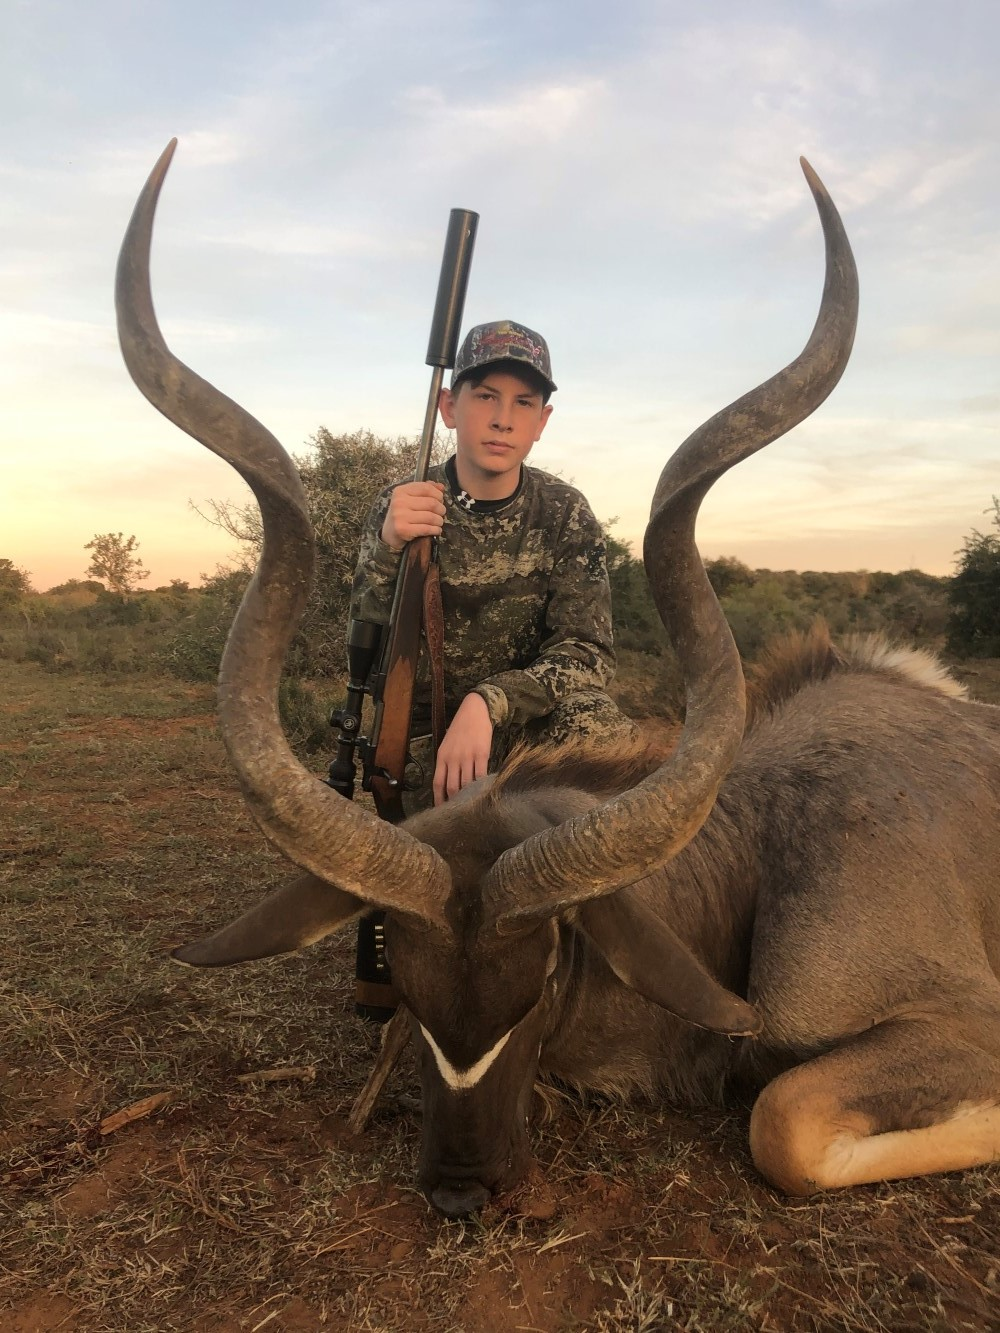 Sable Bull Hunting Eastern Cape South Africa,